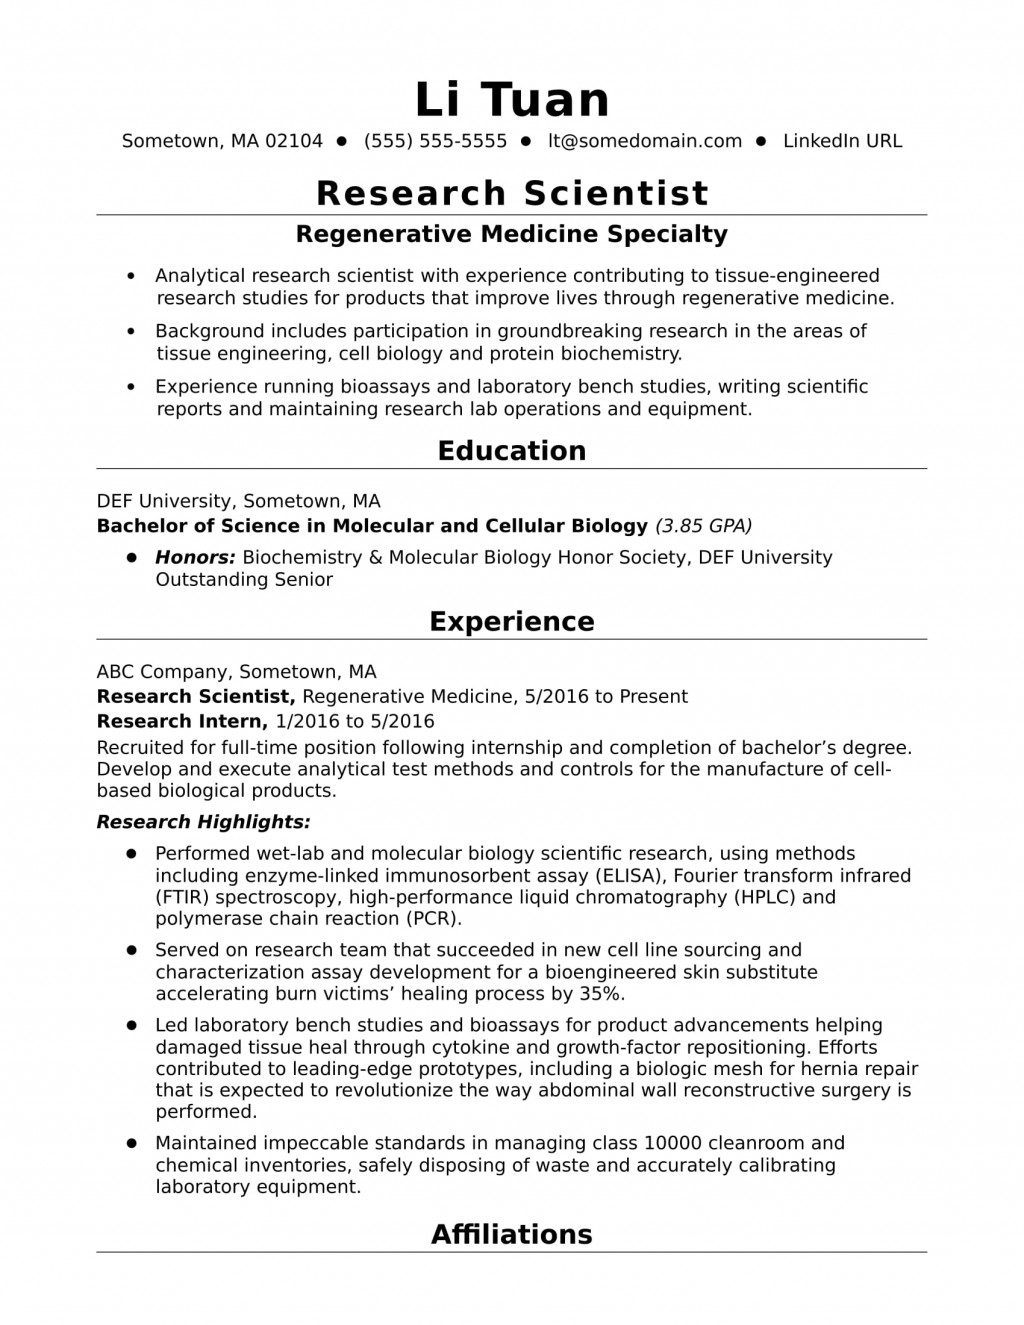 009 Research Scientist Entry Level Cell Biology Paper Unbelievable Topics Large